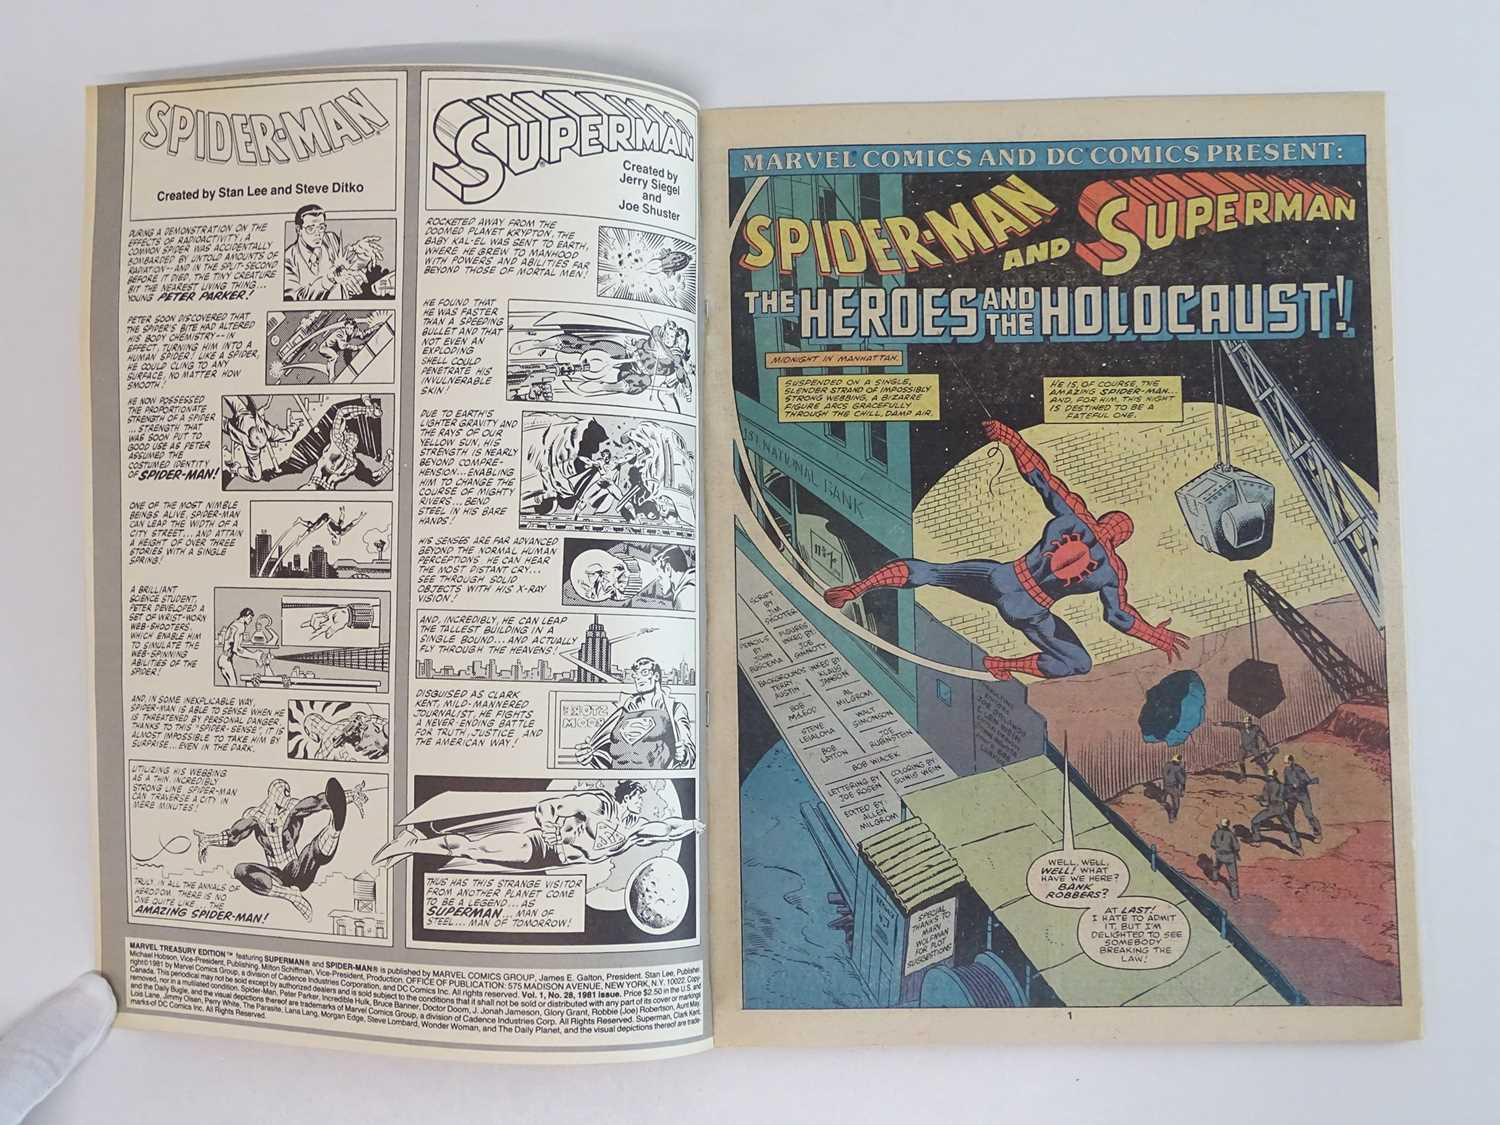 SUPERMAN AND SPIDER-MAN: COLLECTORS EDITION (1981 - MARVEL/DC) Special edition over-sized issue - Image 4 of 9